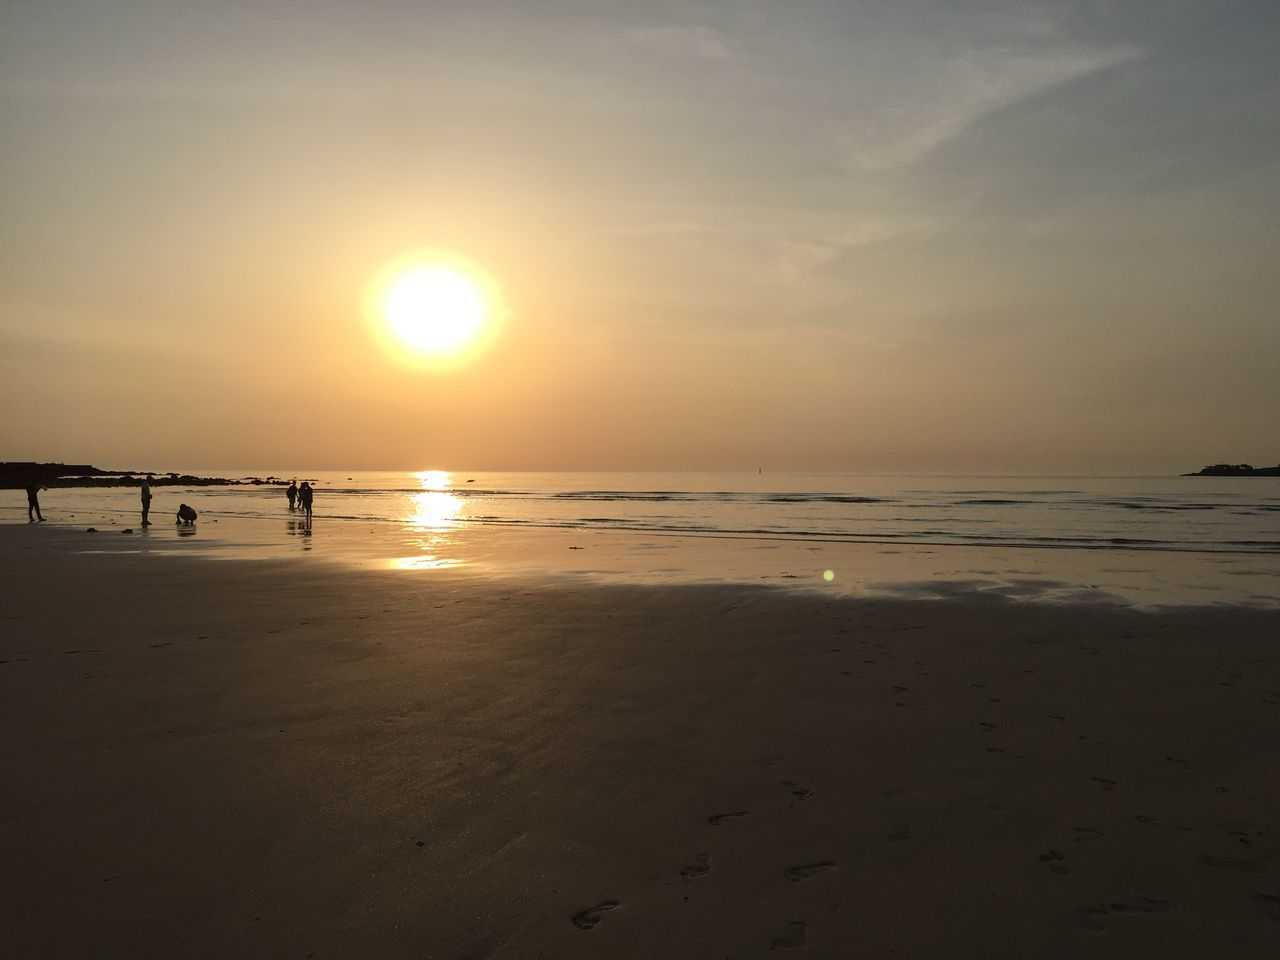 sunset, beach, sea, sun, sand, water, nature, scenics, shore, beauty in nature, tranquil scene, tranquility, sky, horizon over water, reflection, silhouette, outdoors, sunlight, wave, no people, day